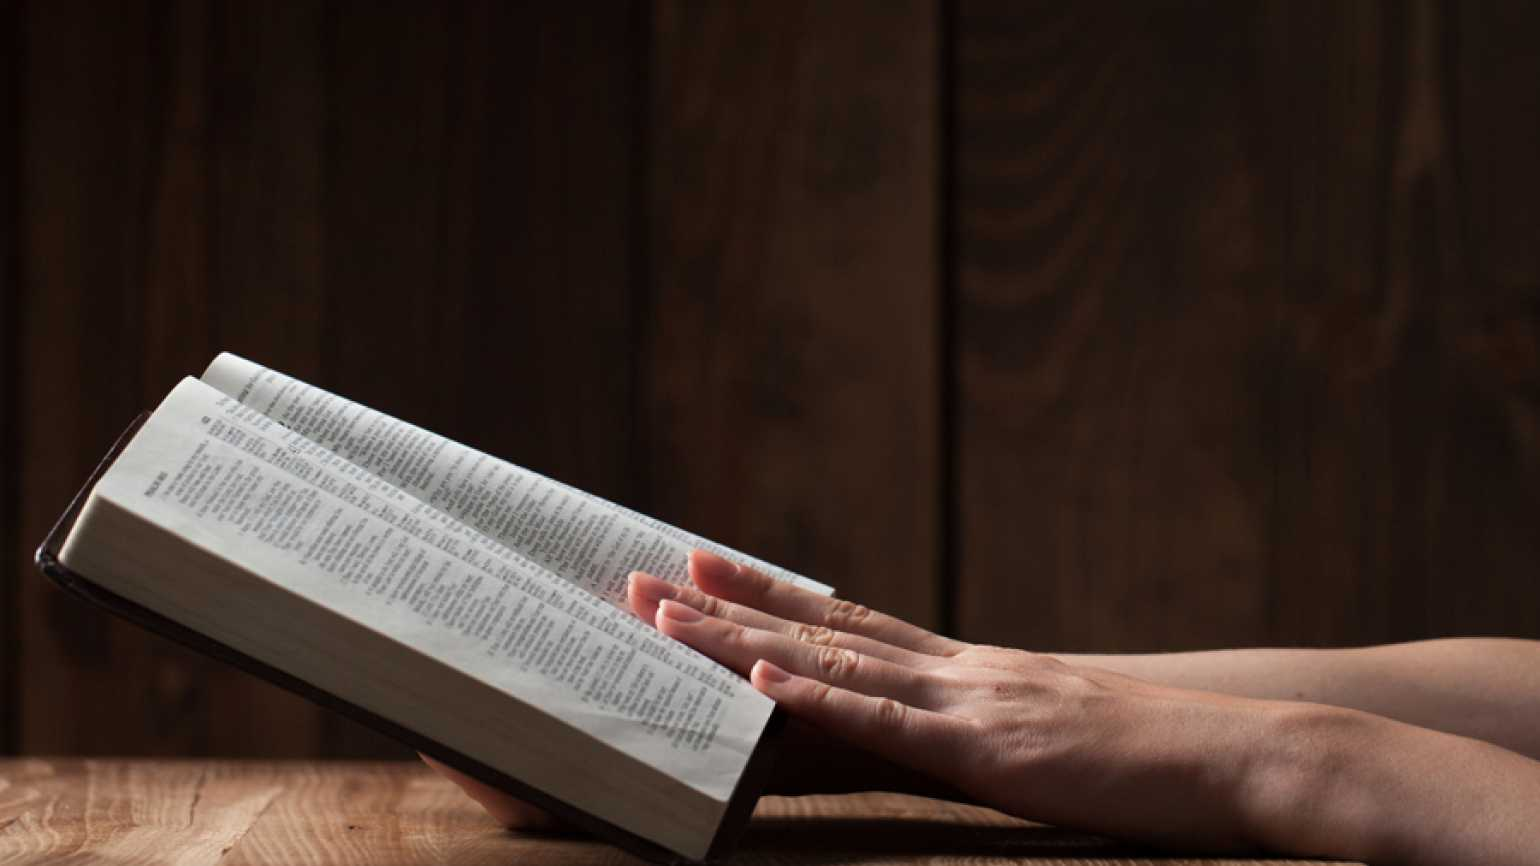 Guideposts: A woman's hand rests on an open Bible.